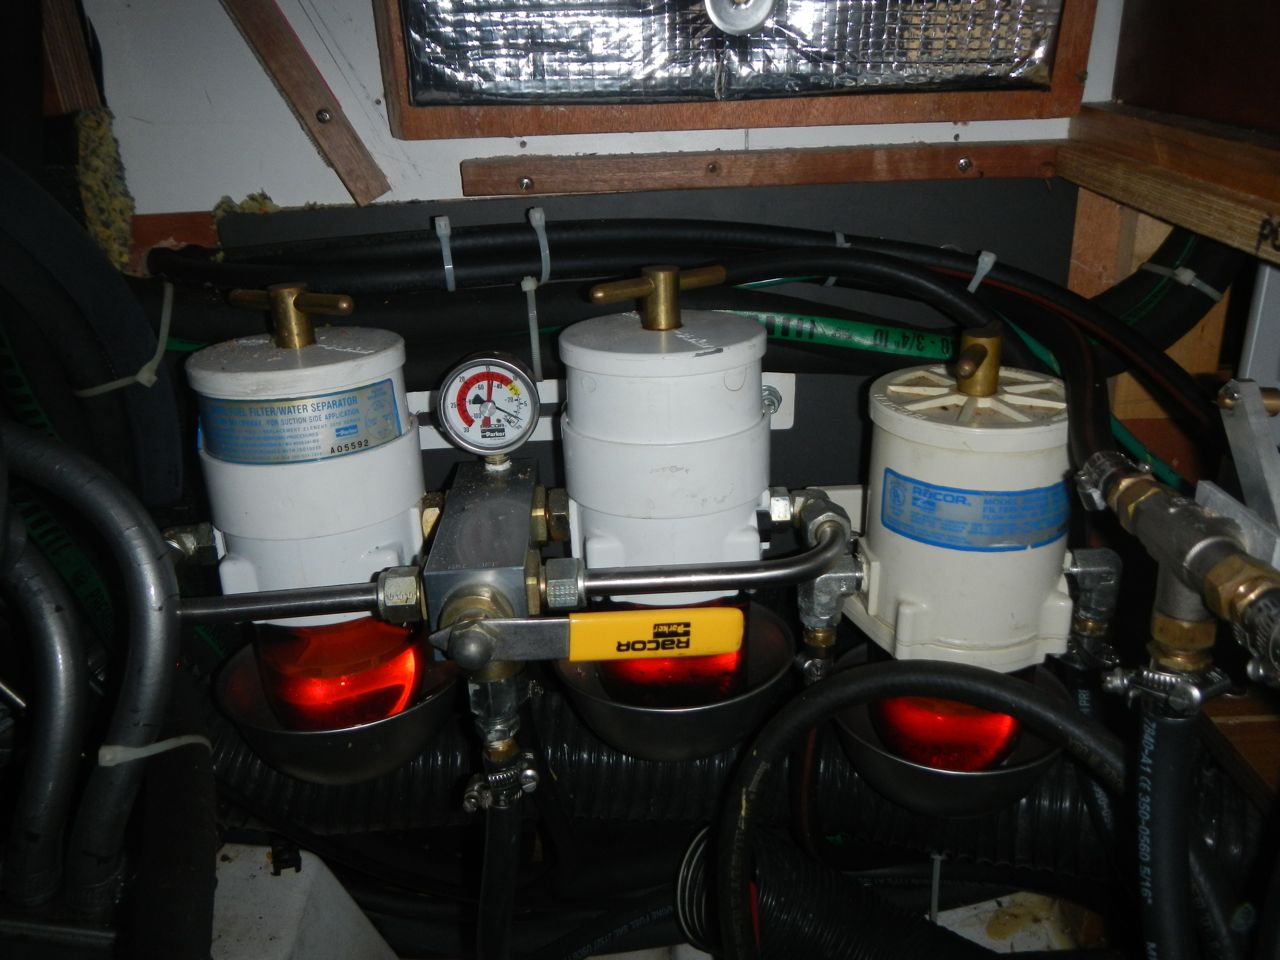 Aft Fuel Tank Sailing Vessel Echo E350 Filter I Also Added A Dual Racor System For The Main Engine This Allows Us To Switch Filters On Fly If One Gets Plugged Up